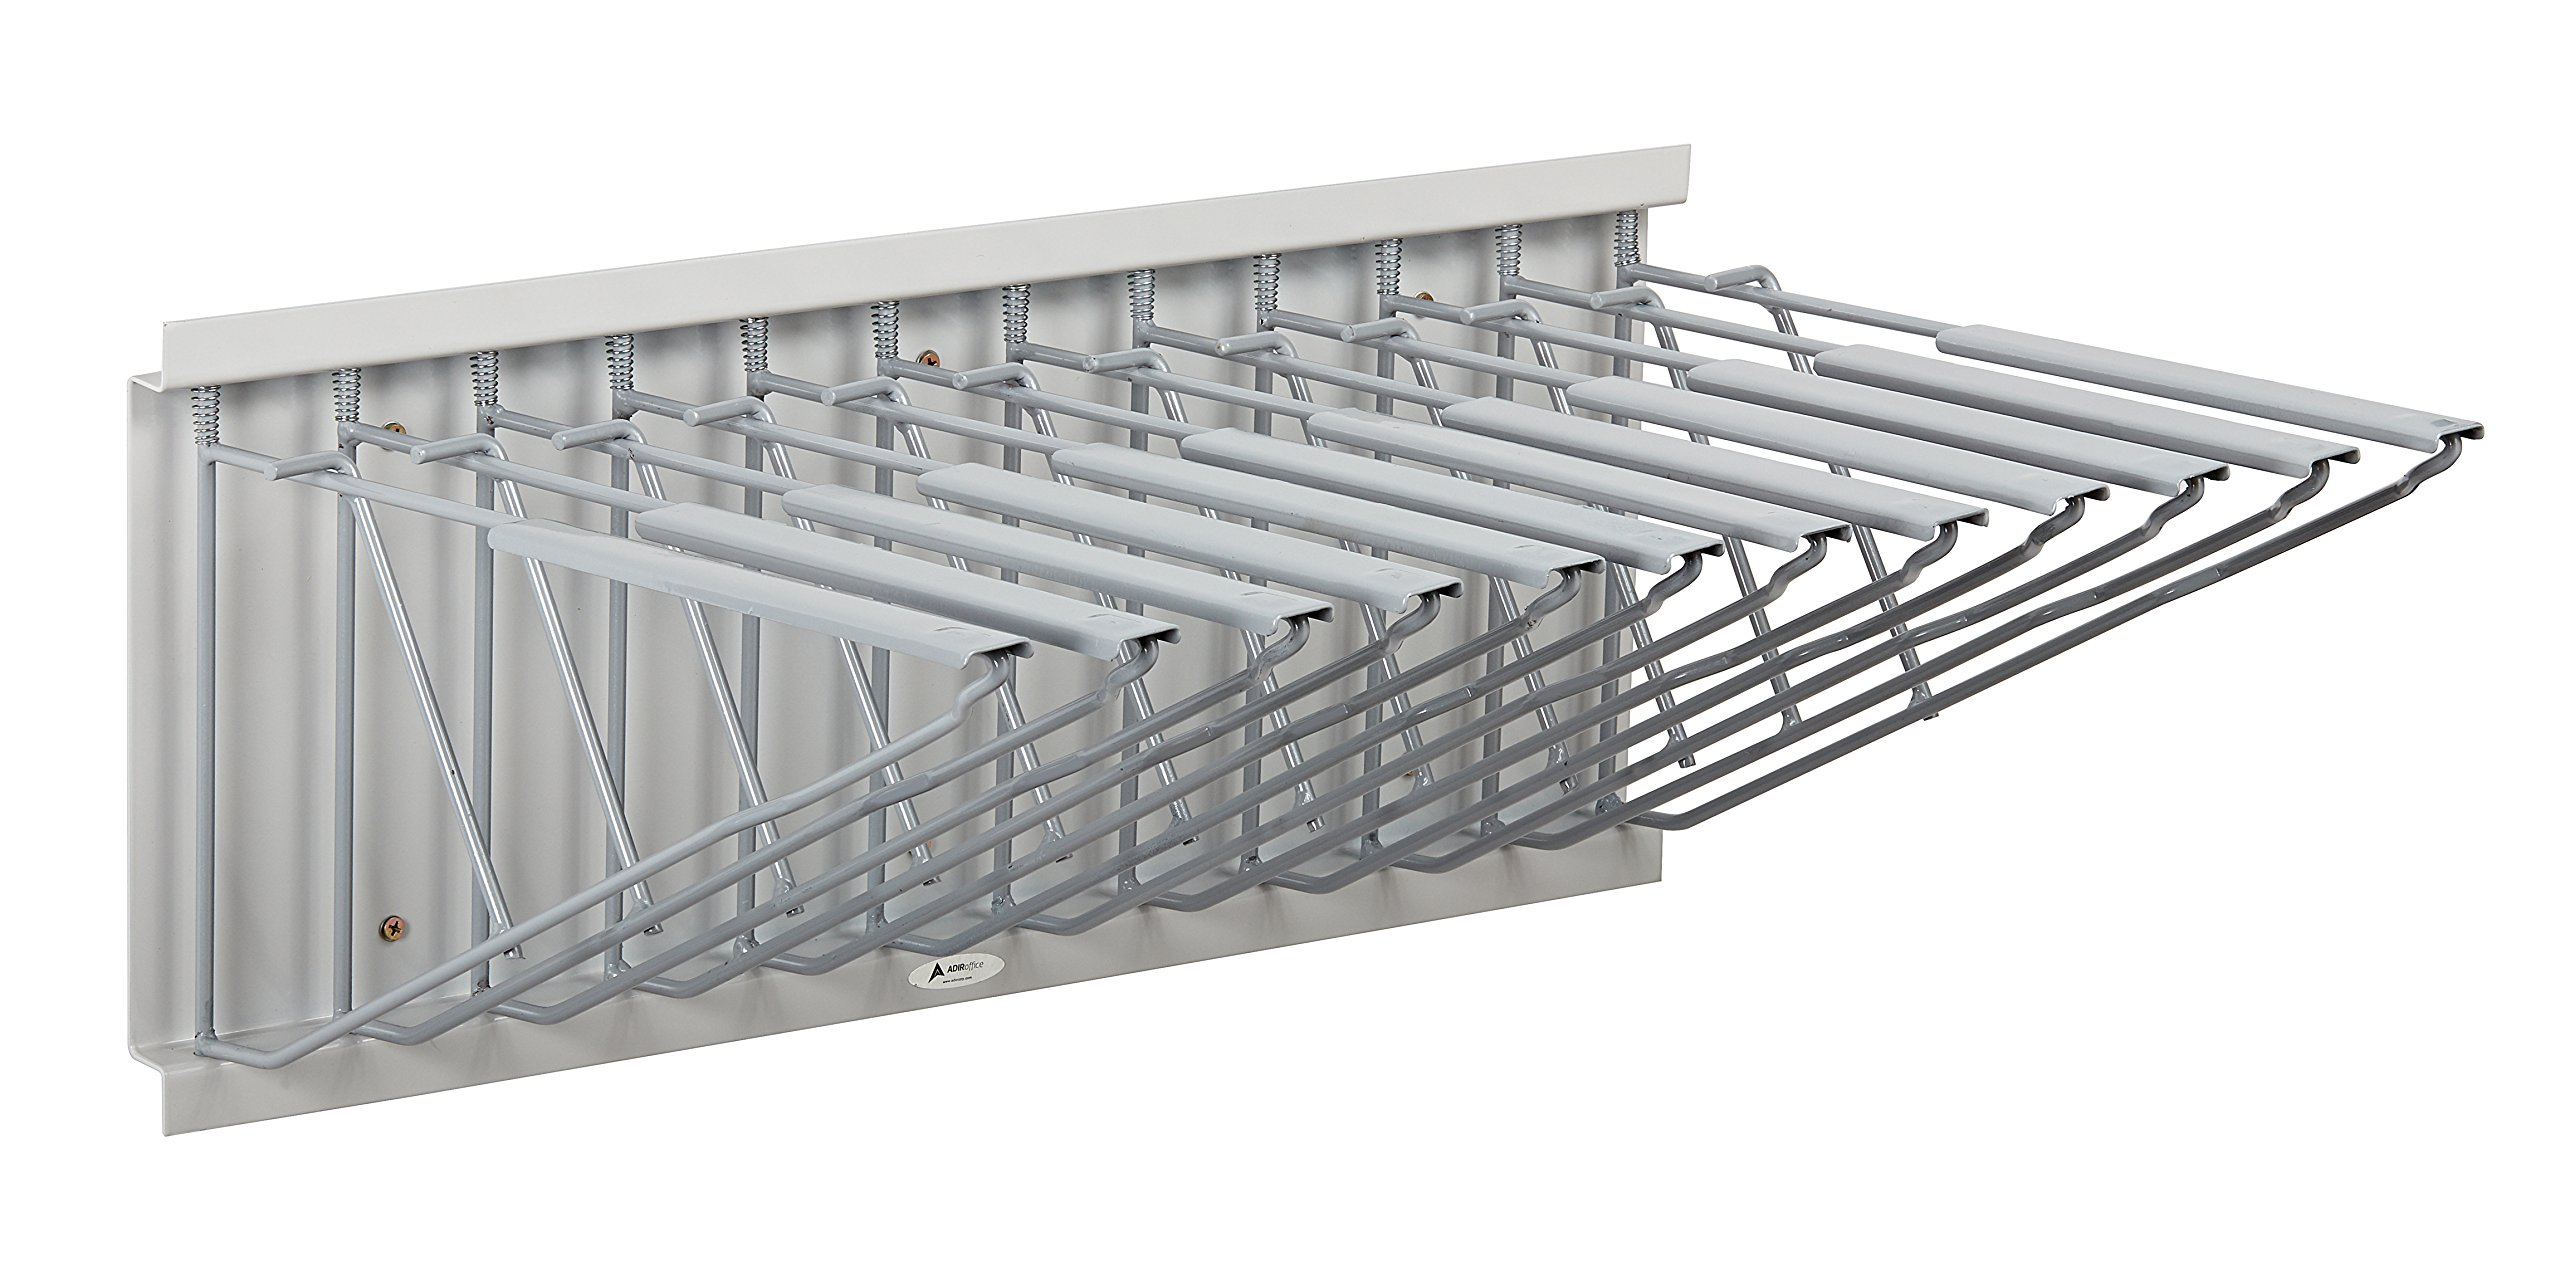 Adir Corp. Pivot Wall Rack with Hangers for Blueprints - Plans, Sand Beige by Adir Corp.